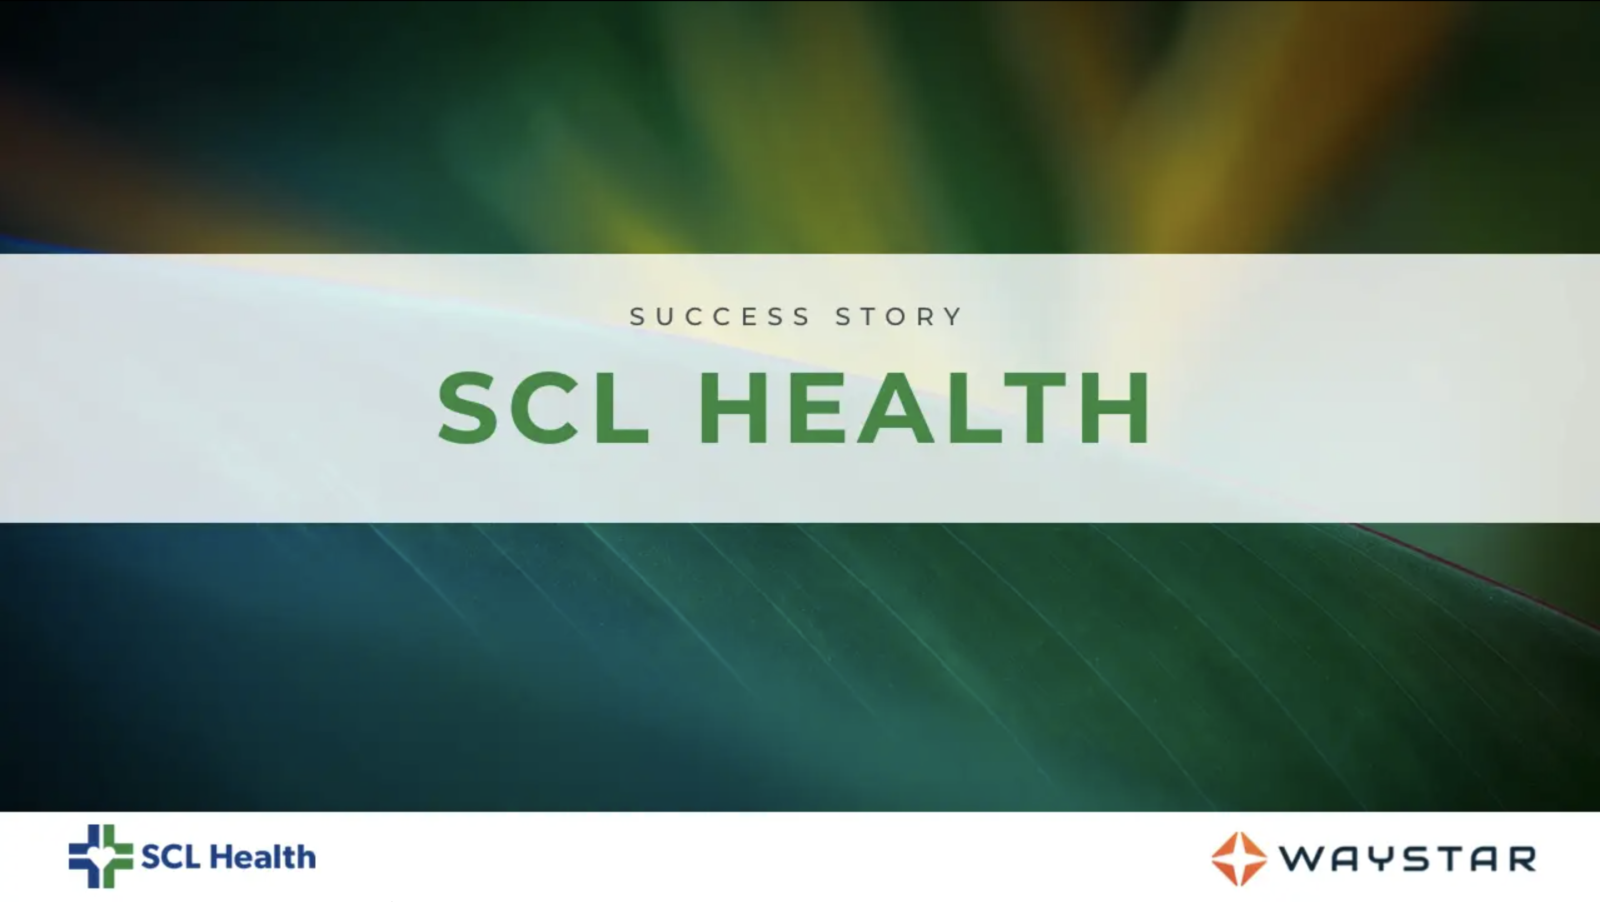 Success story: SCL Health